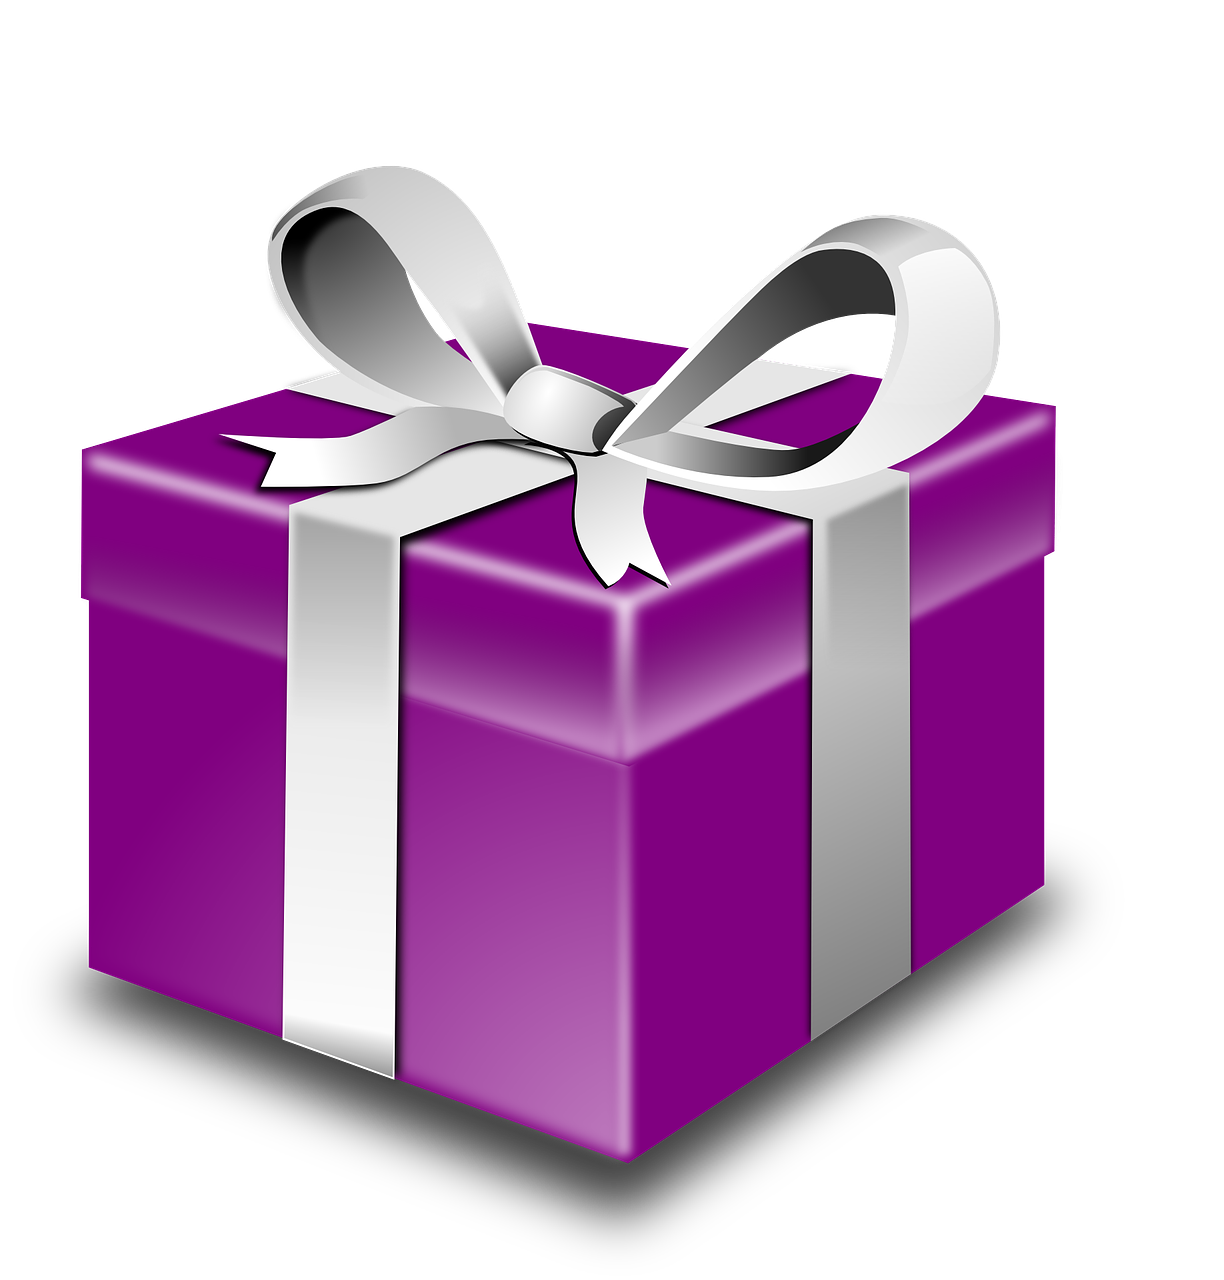 gifts, wrapped, purple